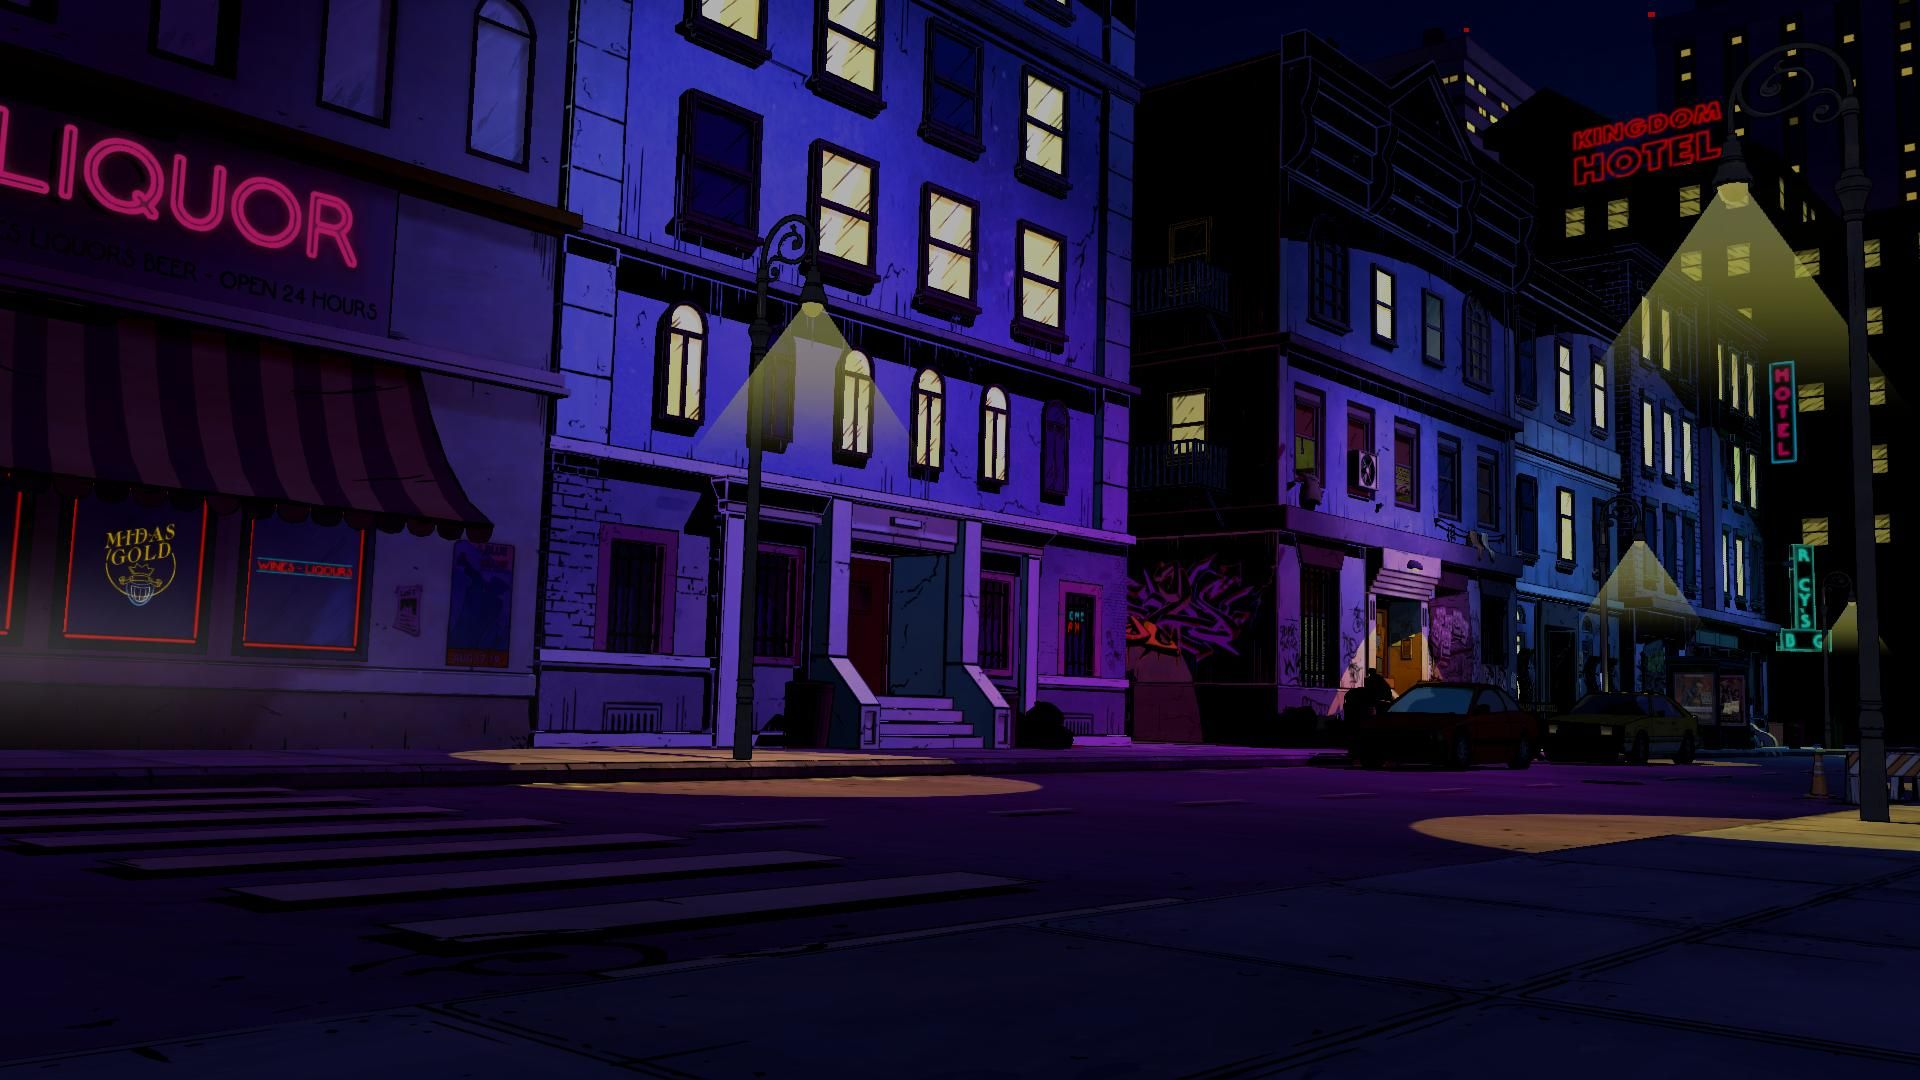 Hd 1920 X 1080 The Wolf Among Us Streetview The Wolf Among Us Aesthetic Art Film Inspiration